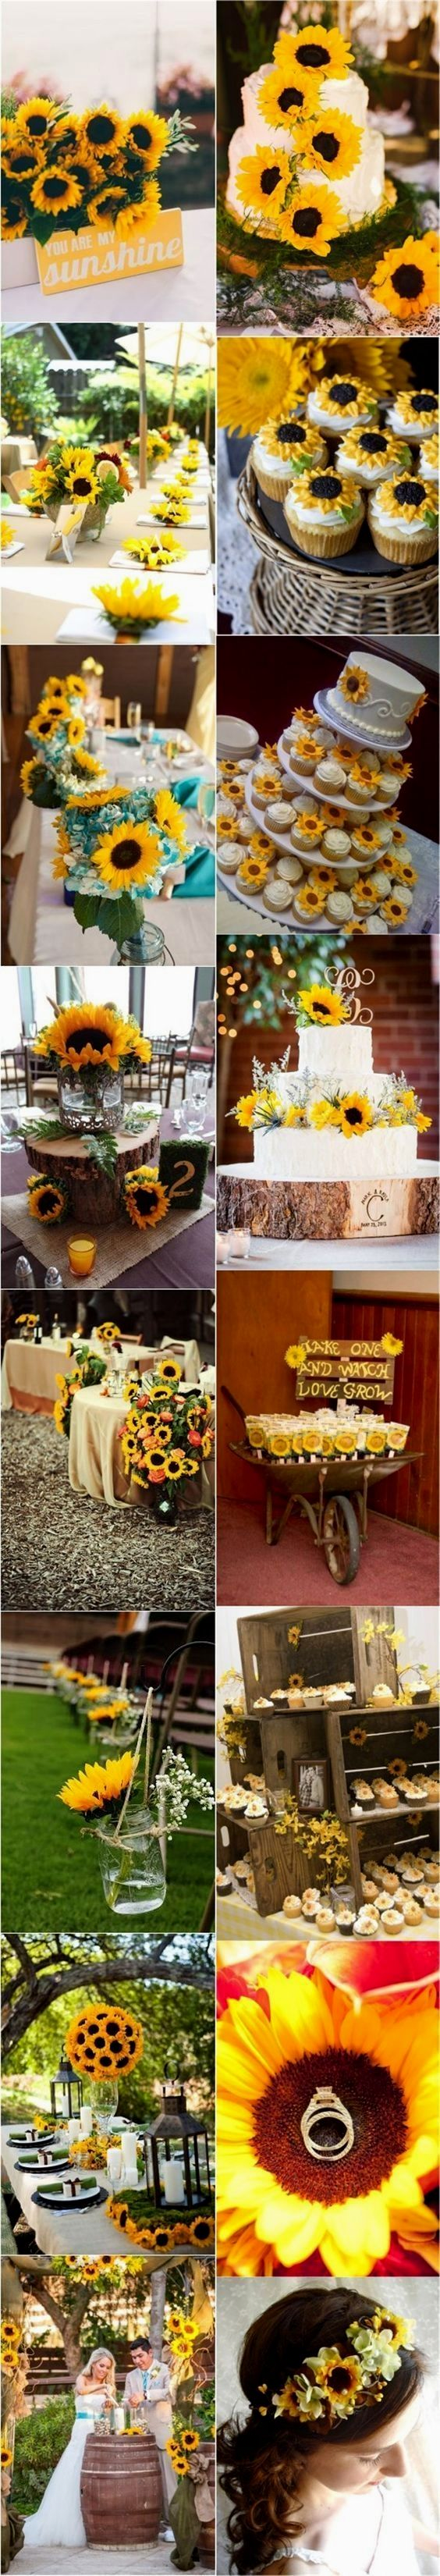 Brianne Merck saved to Food in Party Wishes and Desires70+ Sunflower Ideas- See more at: http://www.deerpearlflowers.com/sunflower-wedding-ideas-and-wedding-invitations/#sthash.IgfmVVc0.dpuf #diywedding #weddings #weddinginspiration